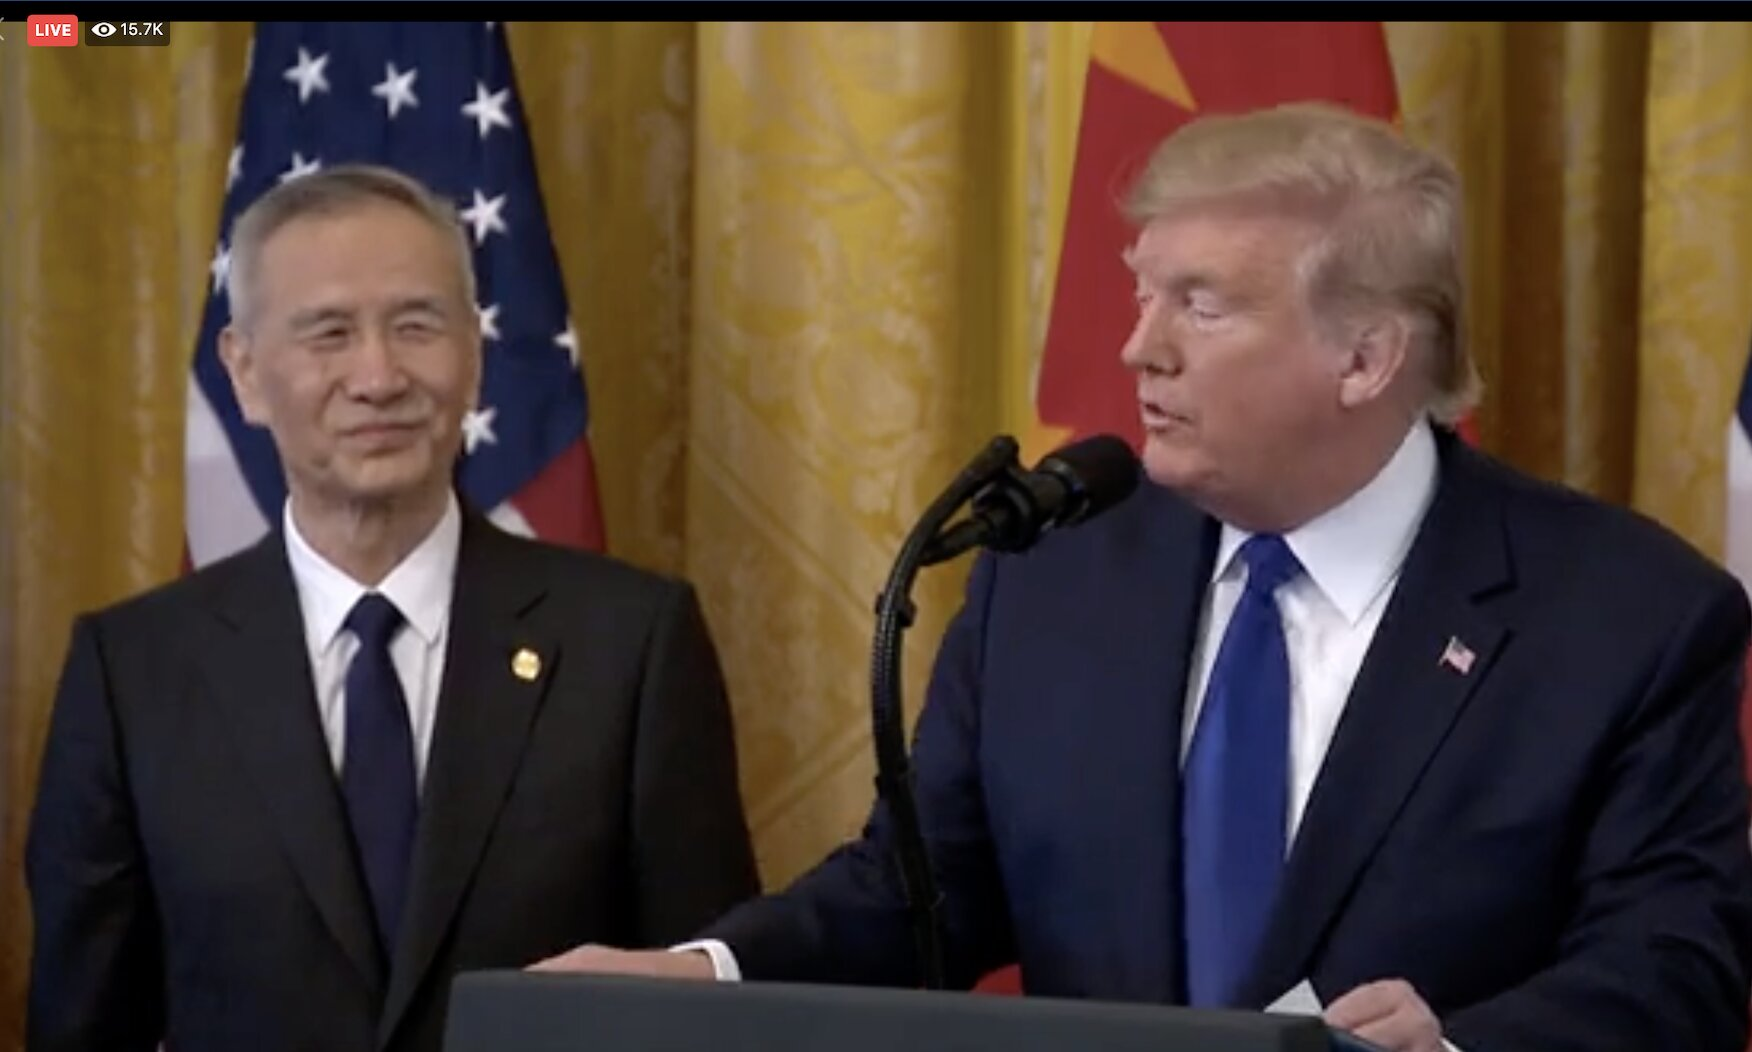 President Trump Participates in a Signing Ceremony of an Agreement Between the U.S. and China